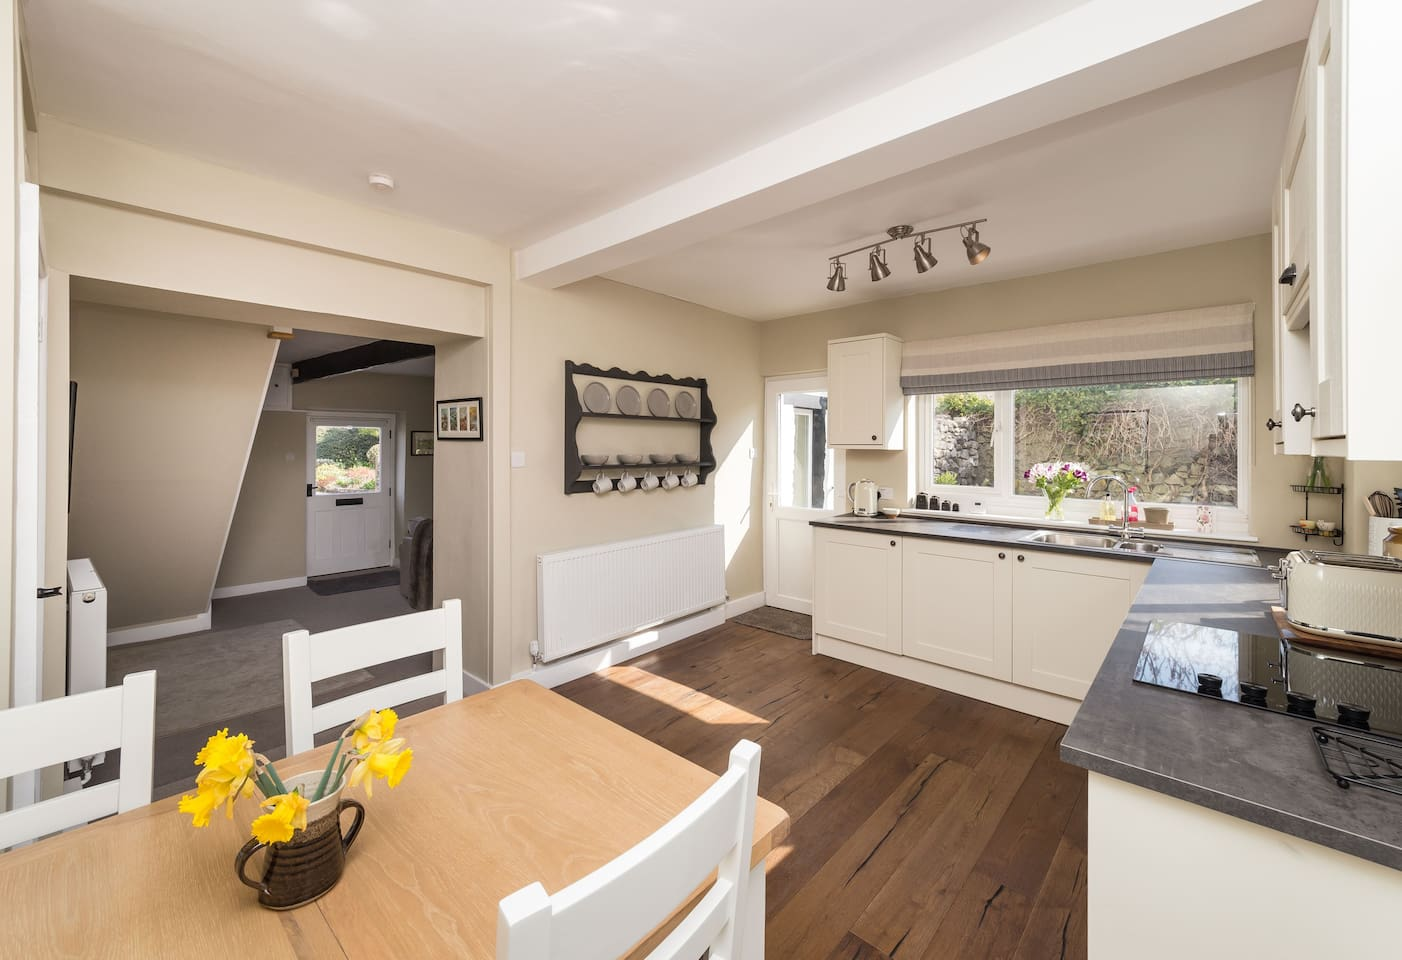 Open plan living, the spacious kitchen diner leads directly through to the living room.